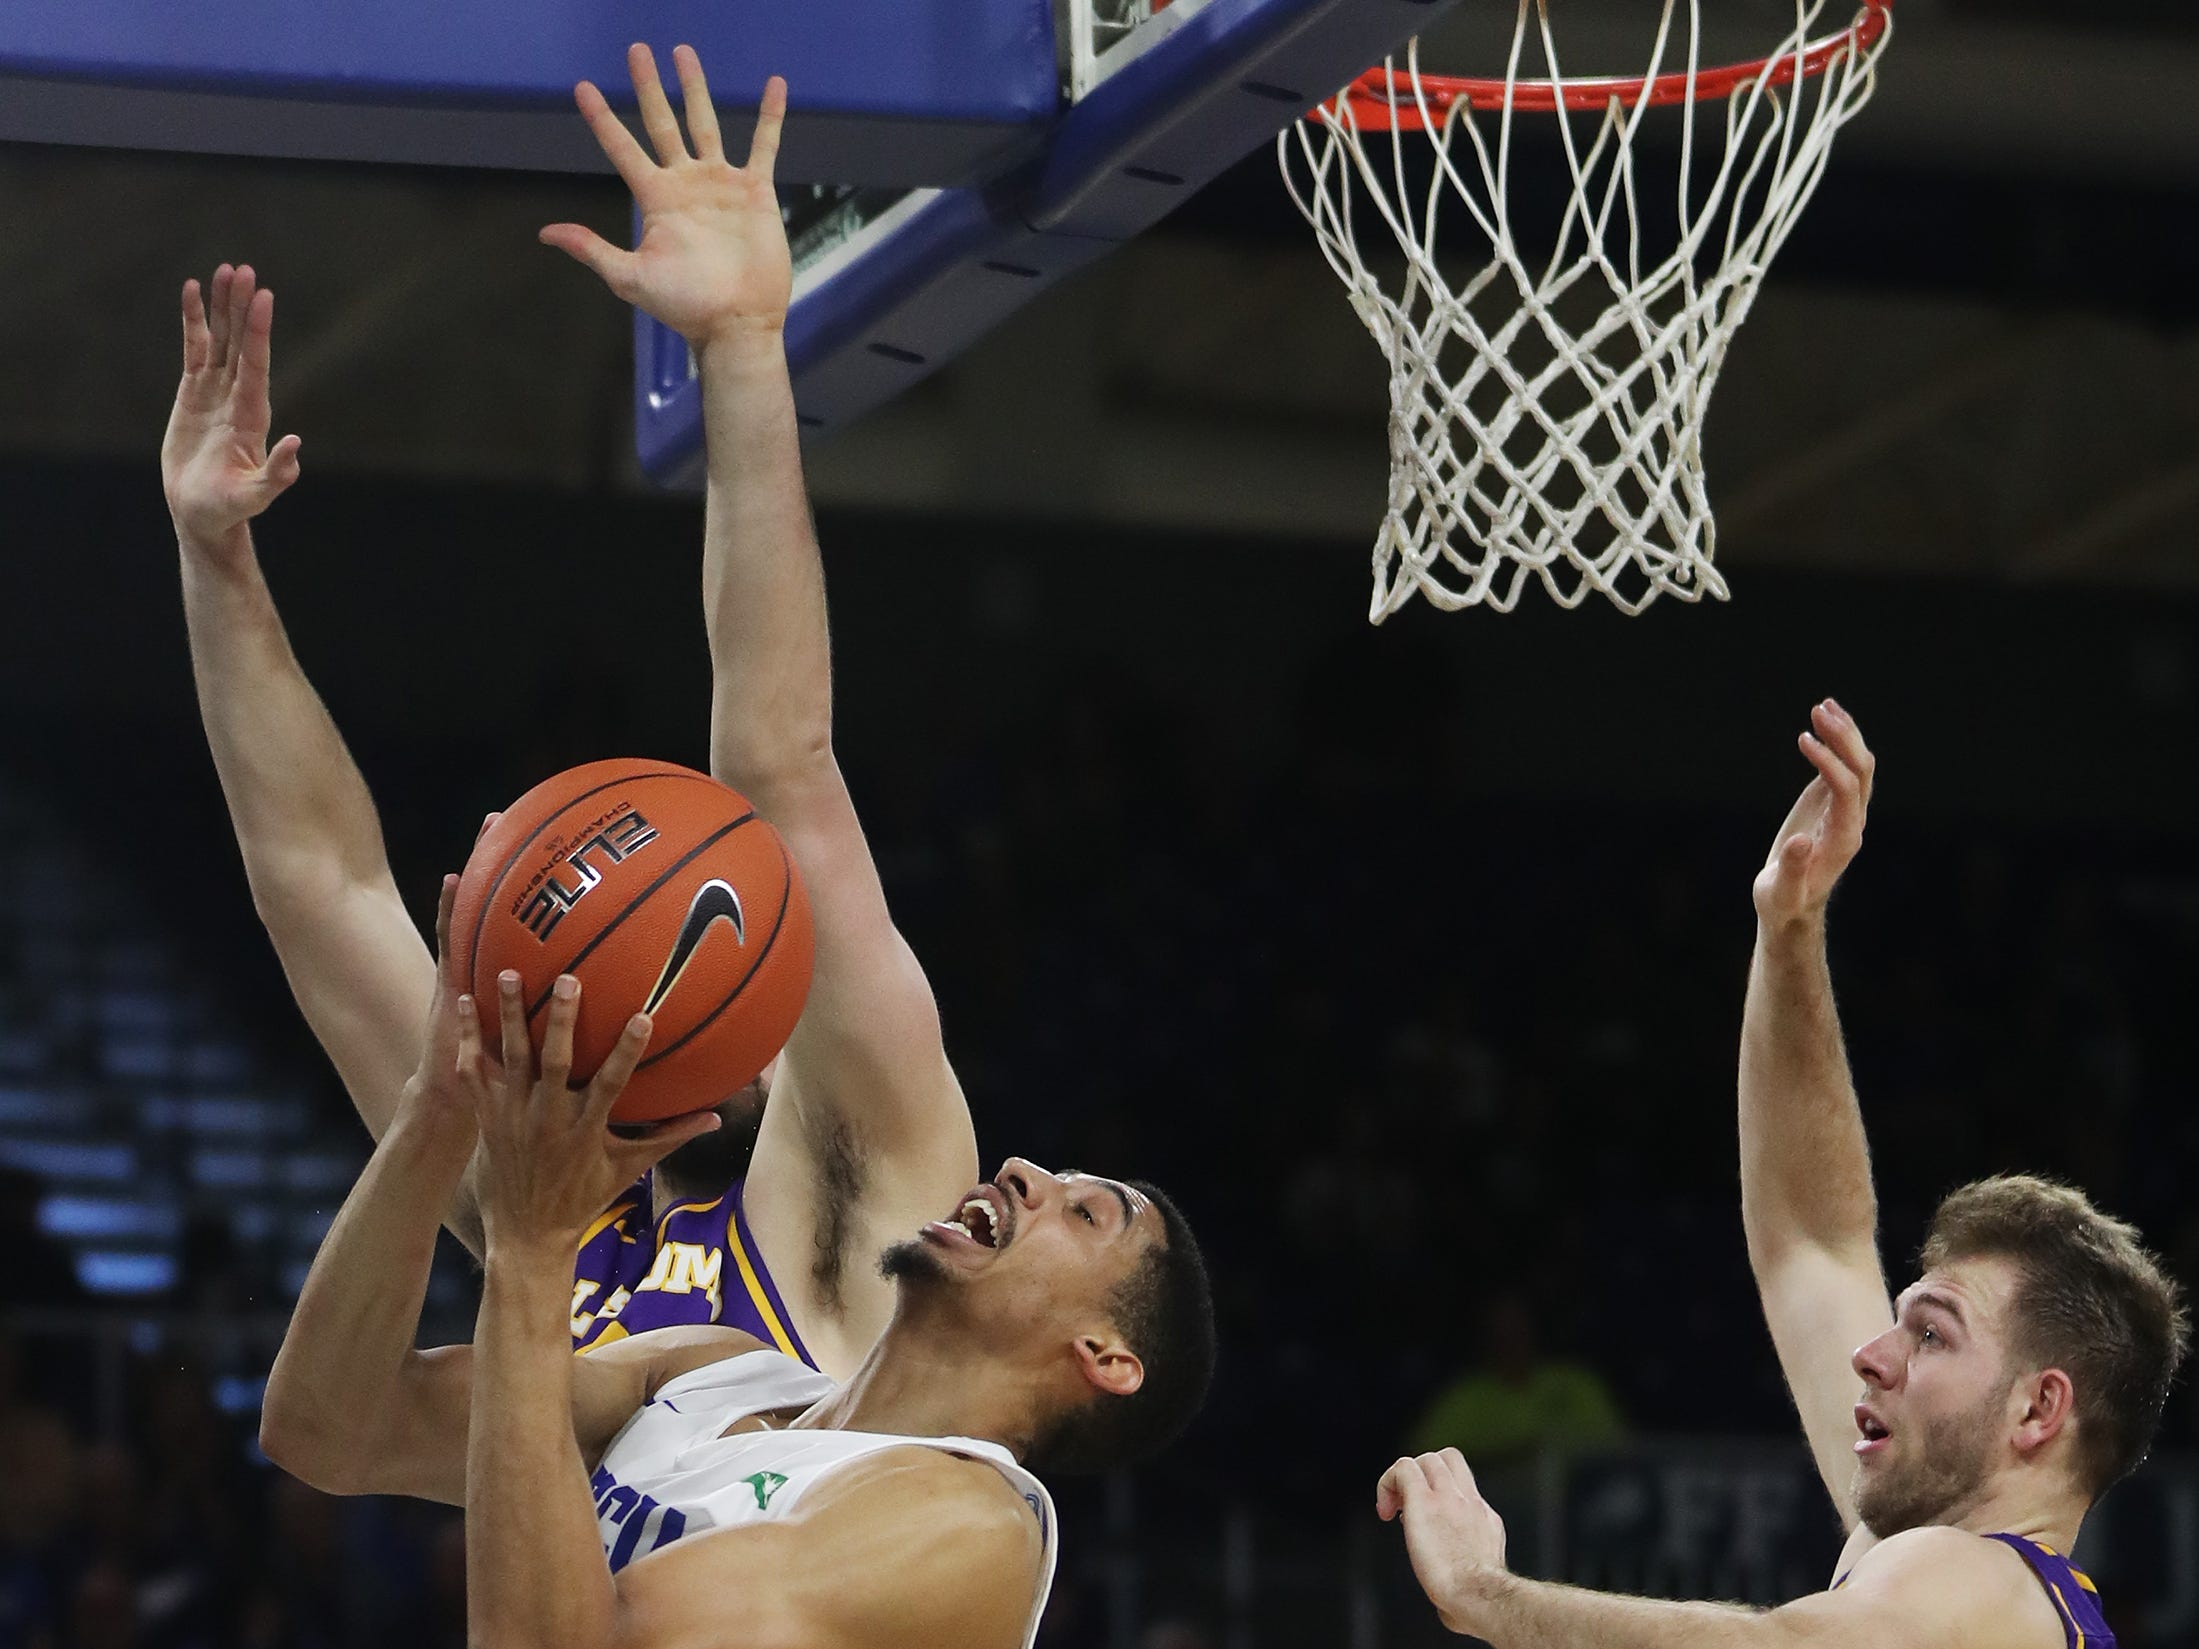 Florida Gulf Coast University's Dinero Mercurius drives to the basket against Lipscomb's Matt Rose on Wednesday at FGCU in Fort Myers. FGCU beat Lipscomb 67-61.